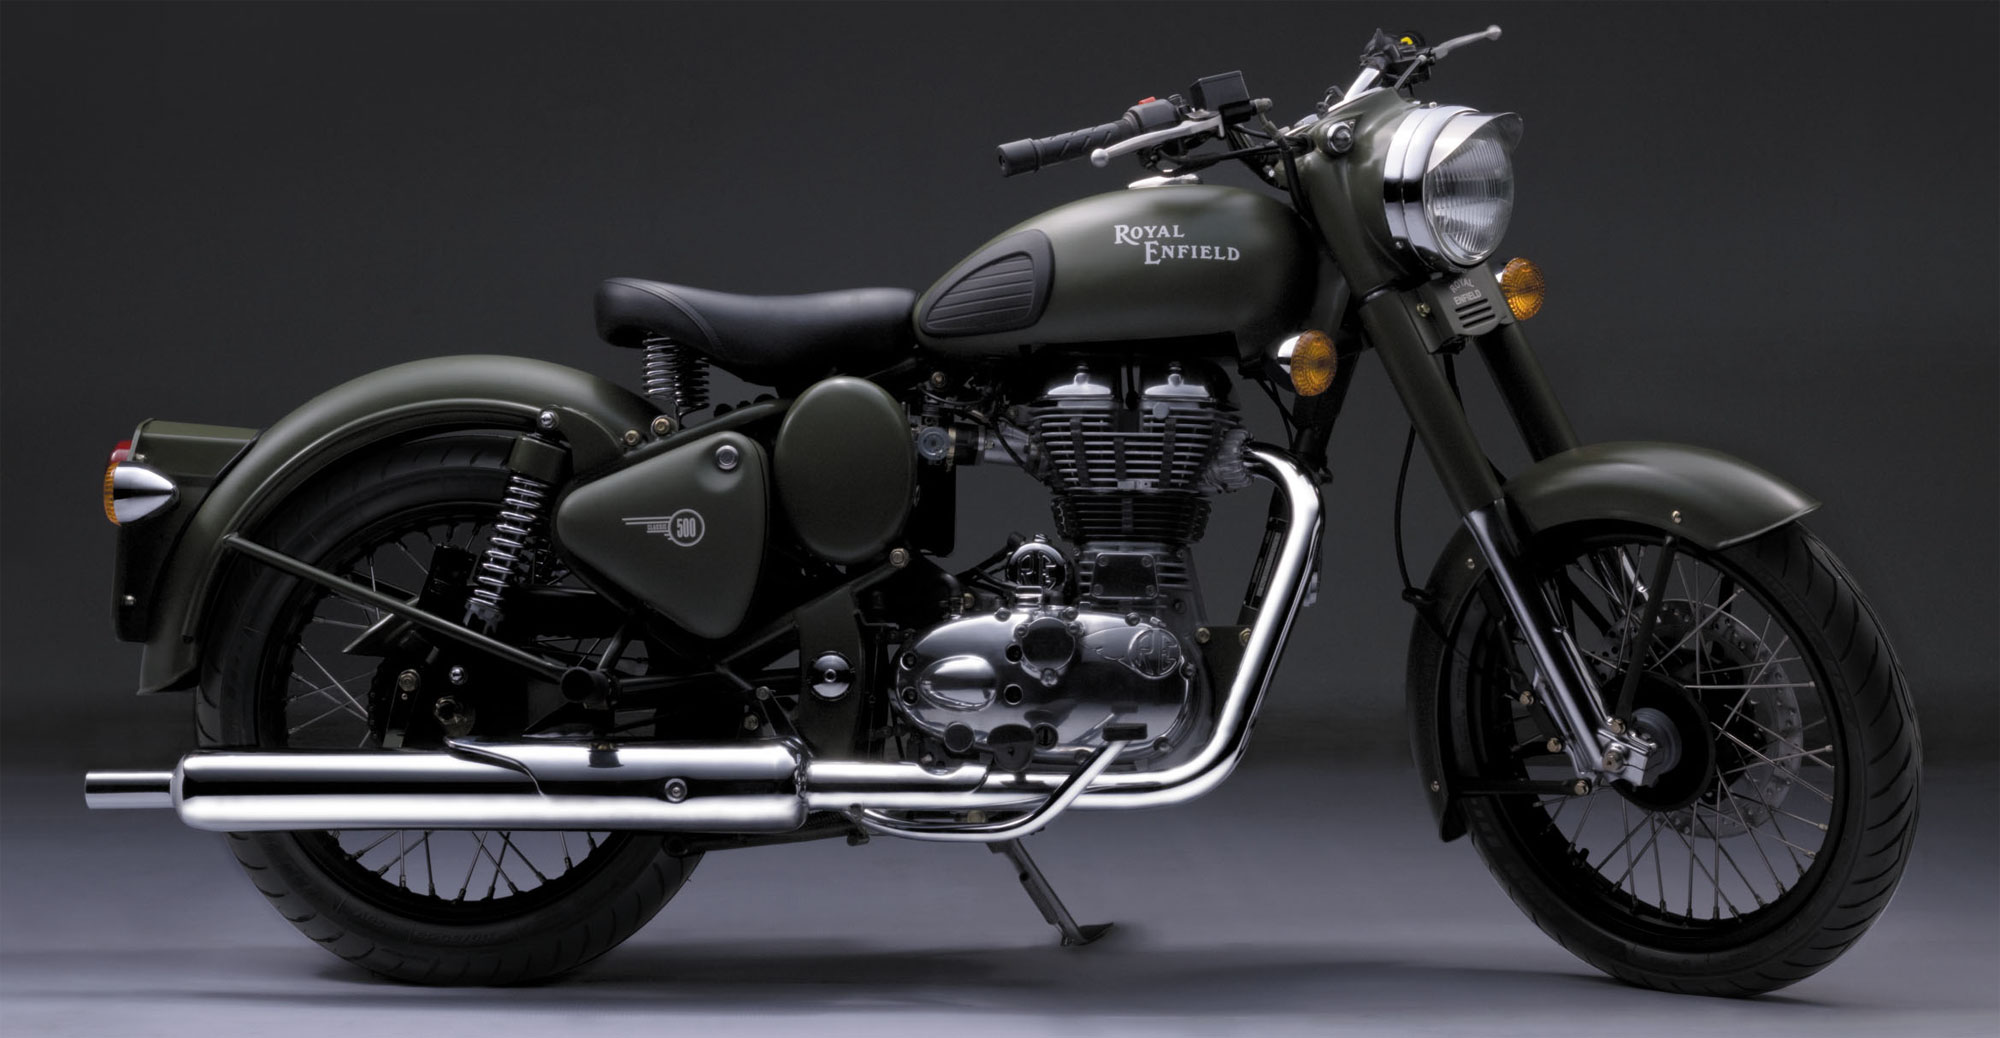 Royal Enfield Bullet 500 Army 2000 images #123254